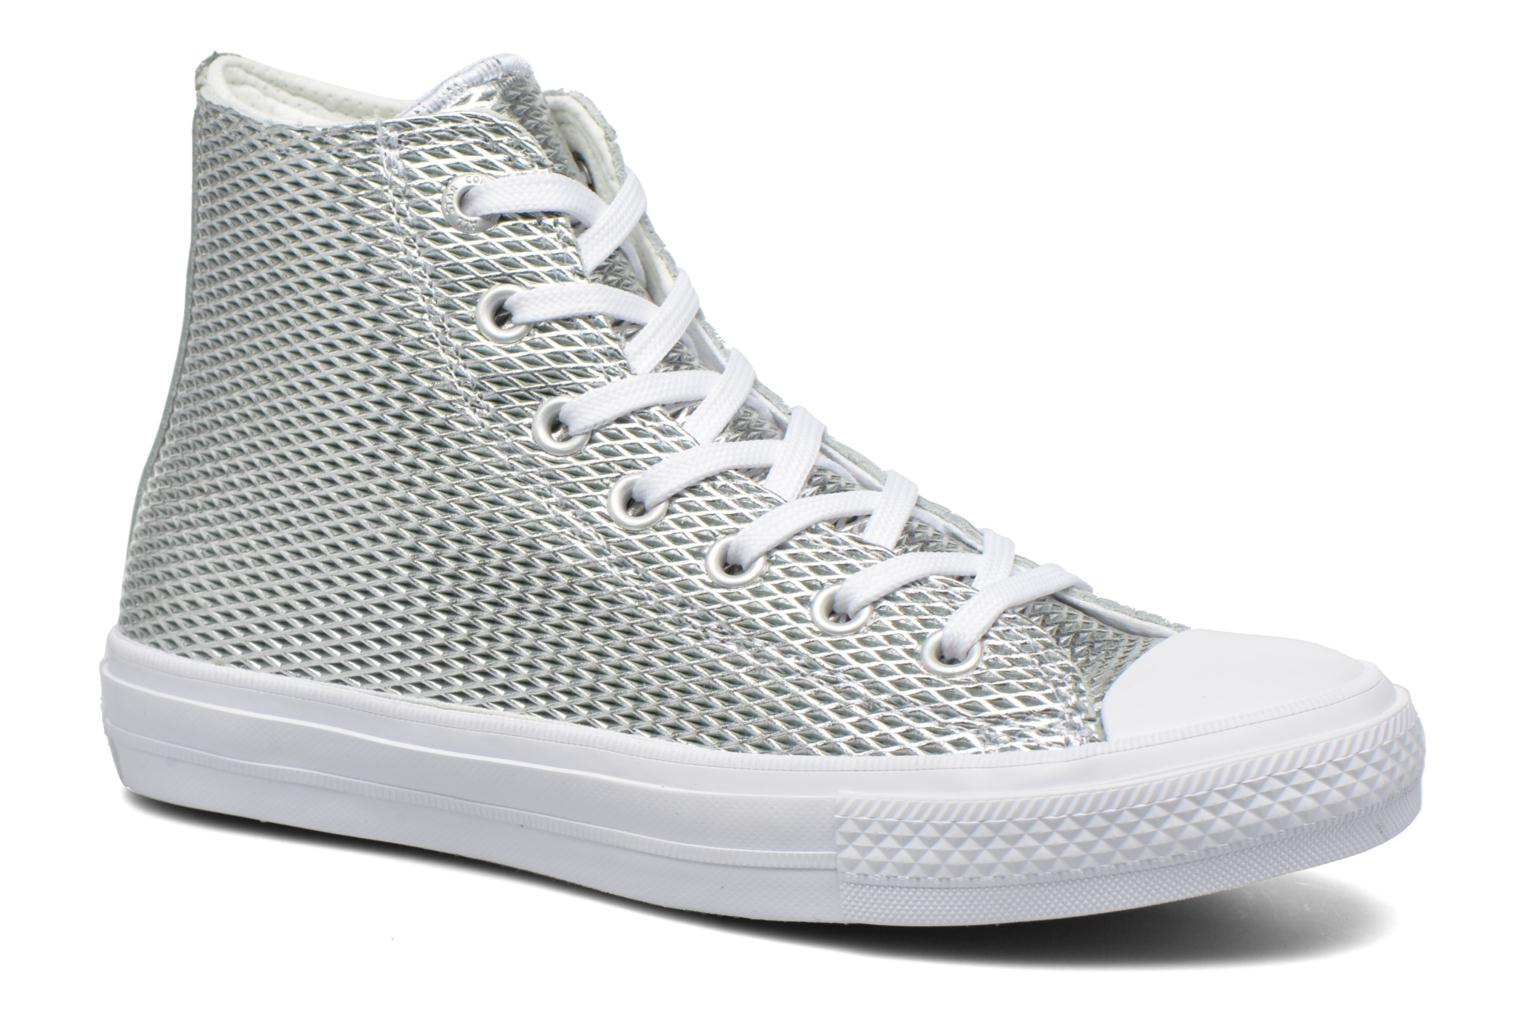 Chuck Taylor All Star II Hi Perf Metallic Leather by Converse